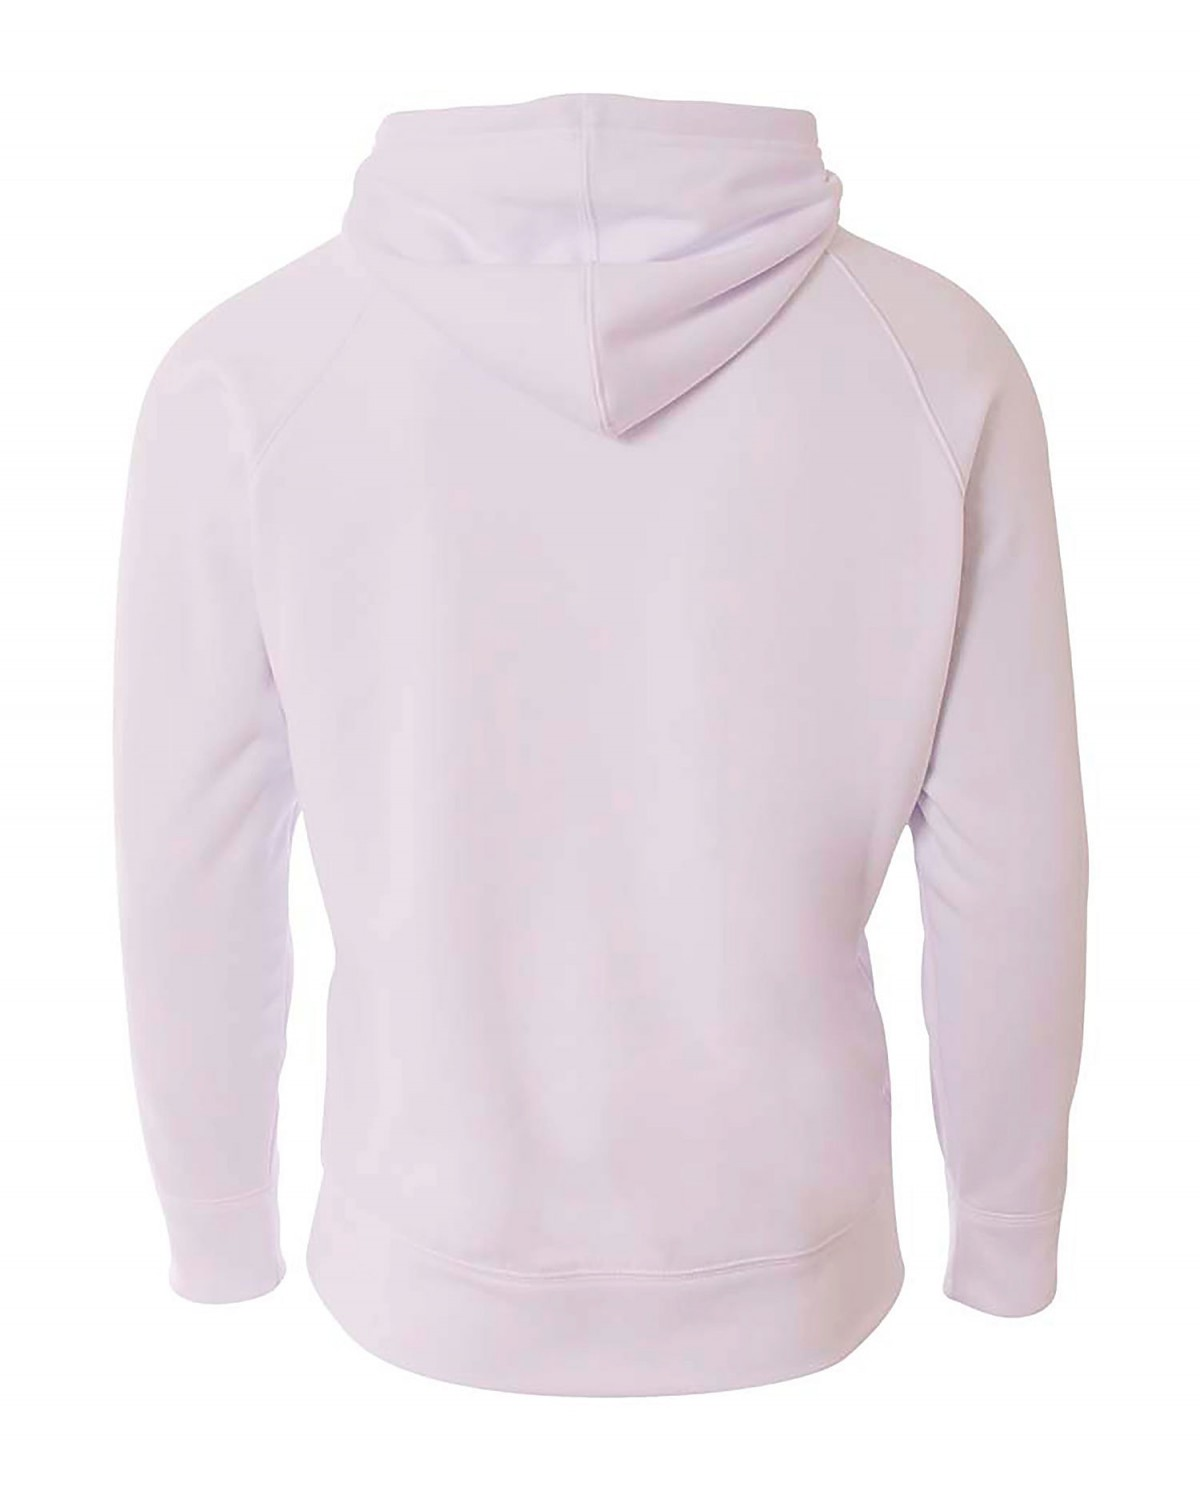 AABB410W American Apparel WHITE/RED